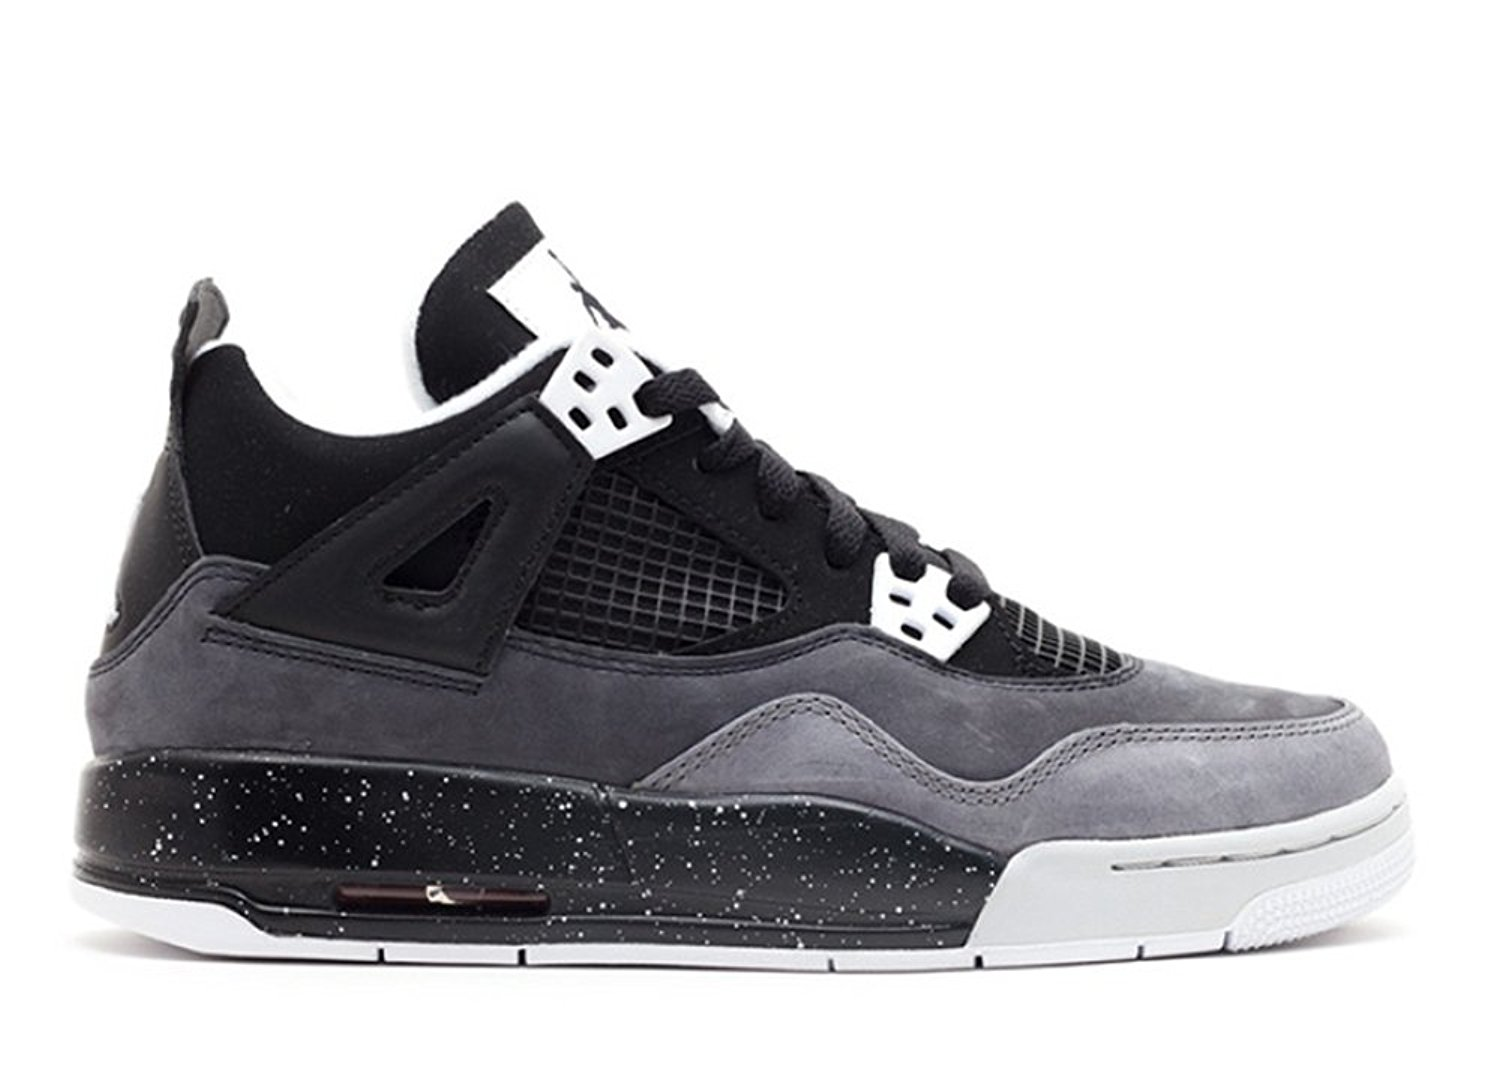 612bb6a84150bd Get Quotations · Tony Barnard Basketball Running Sneakers Leather Athletic Shoes  For Men Air Jordan 4 Retro Gs fear